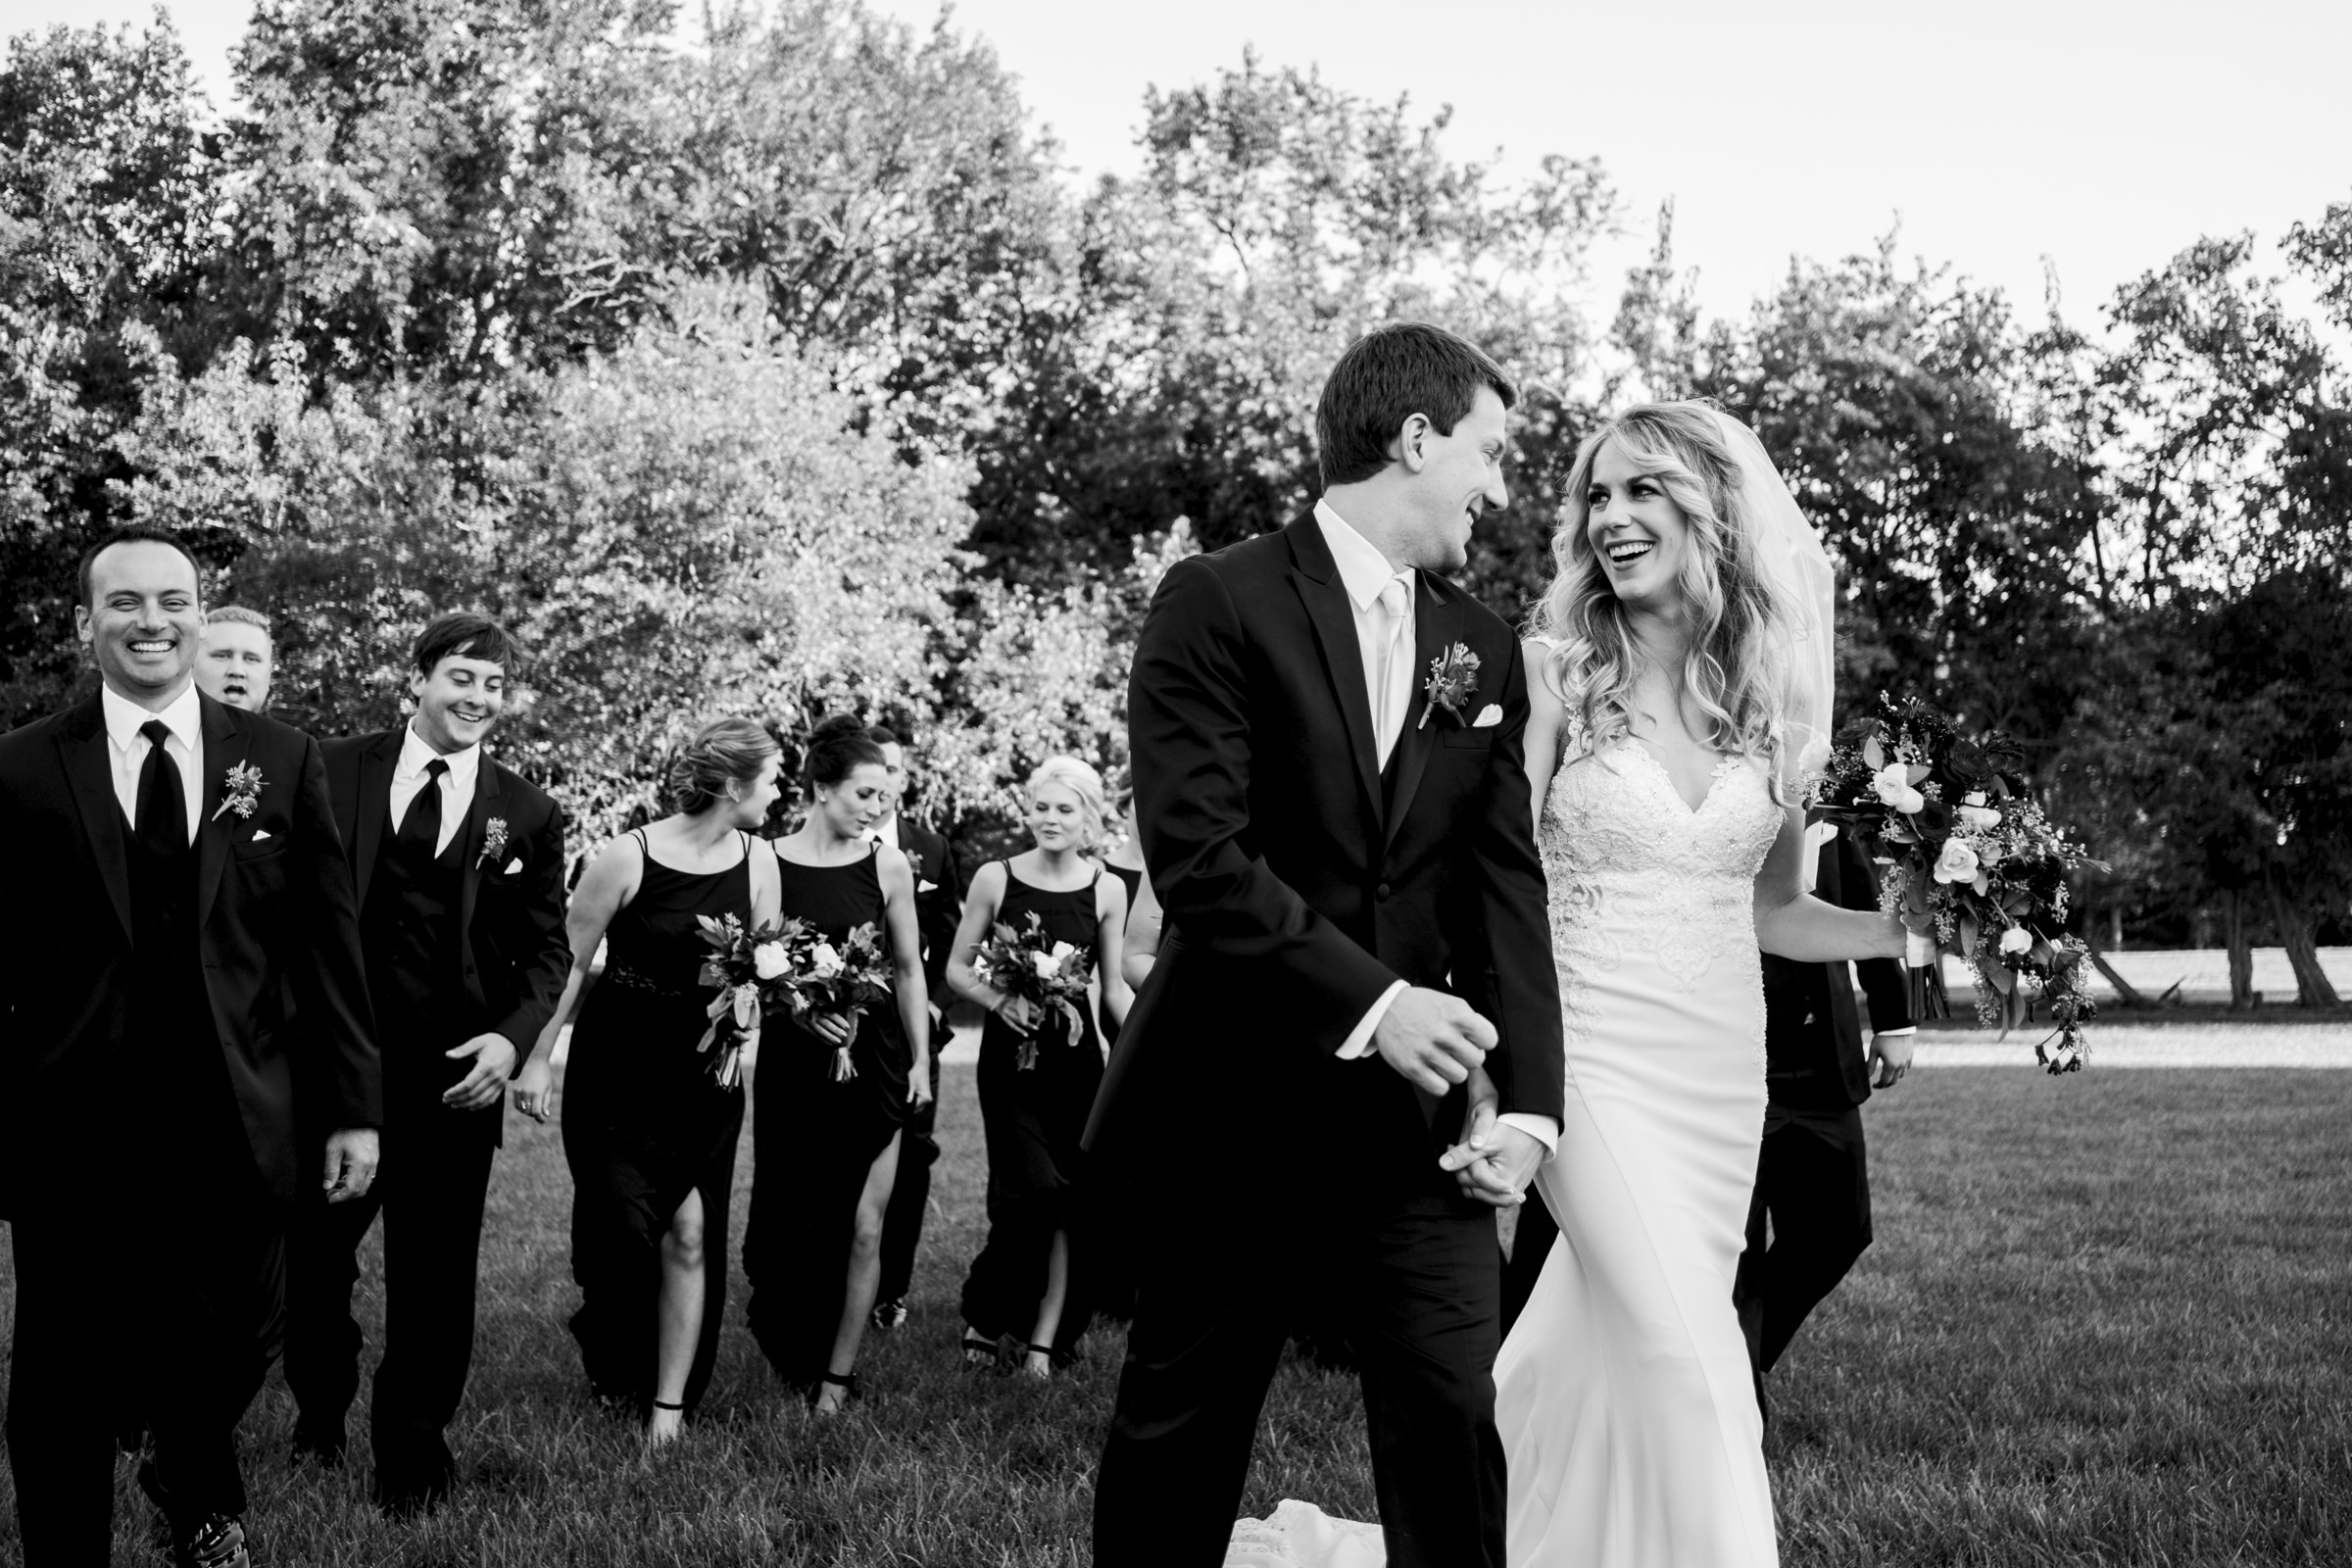 Bride and groom walk in black and white with their bridal party through a field